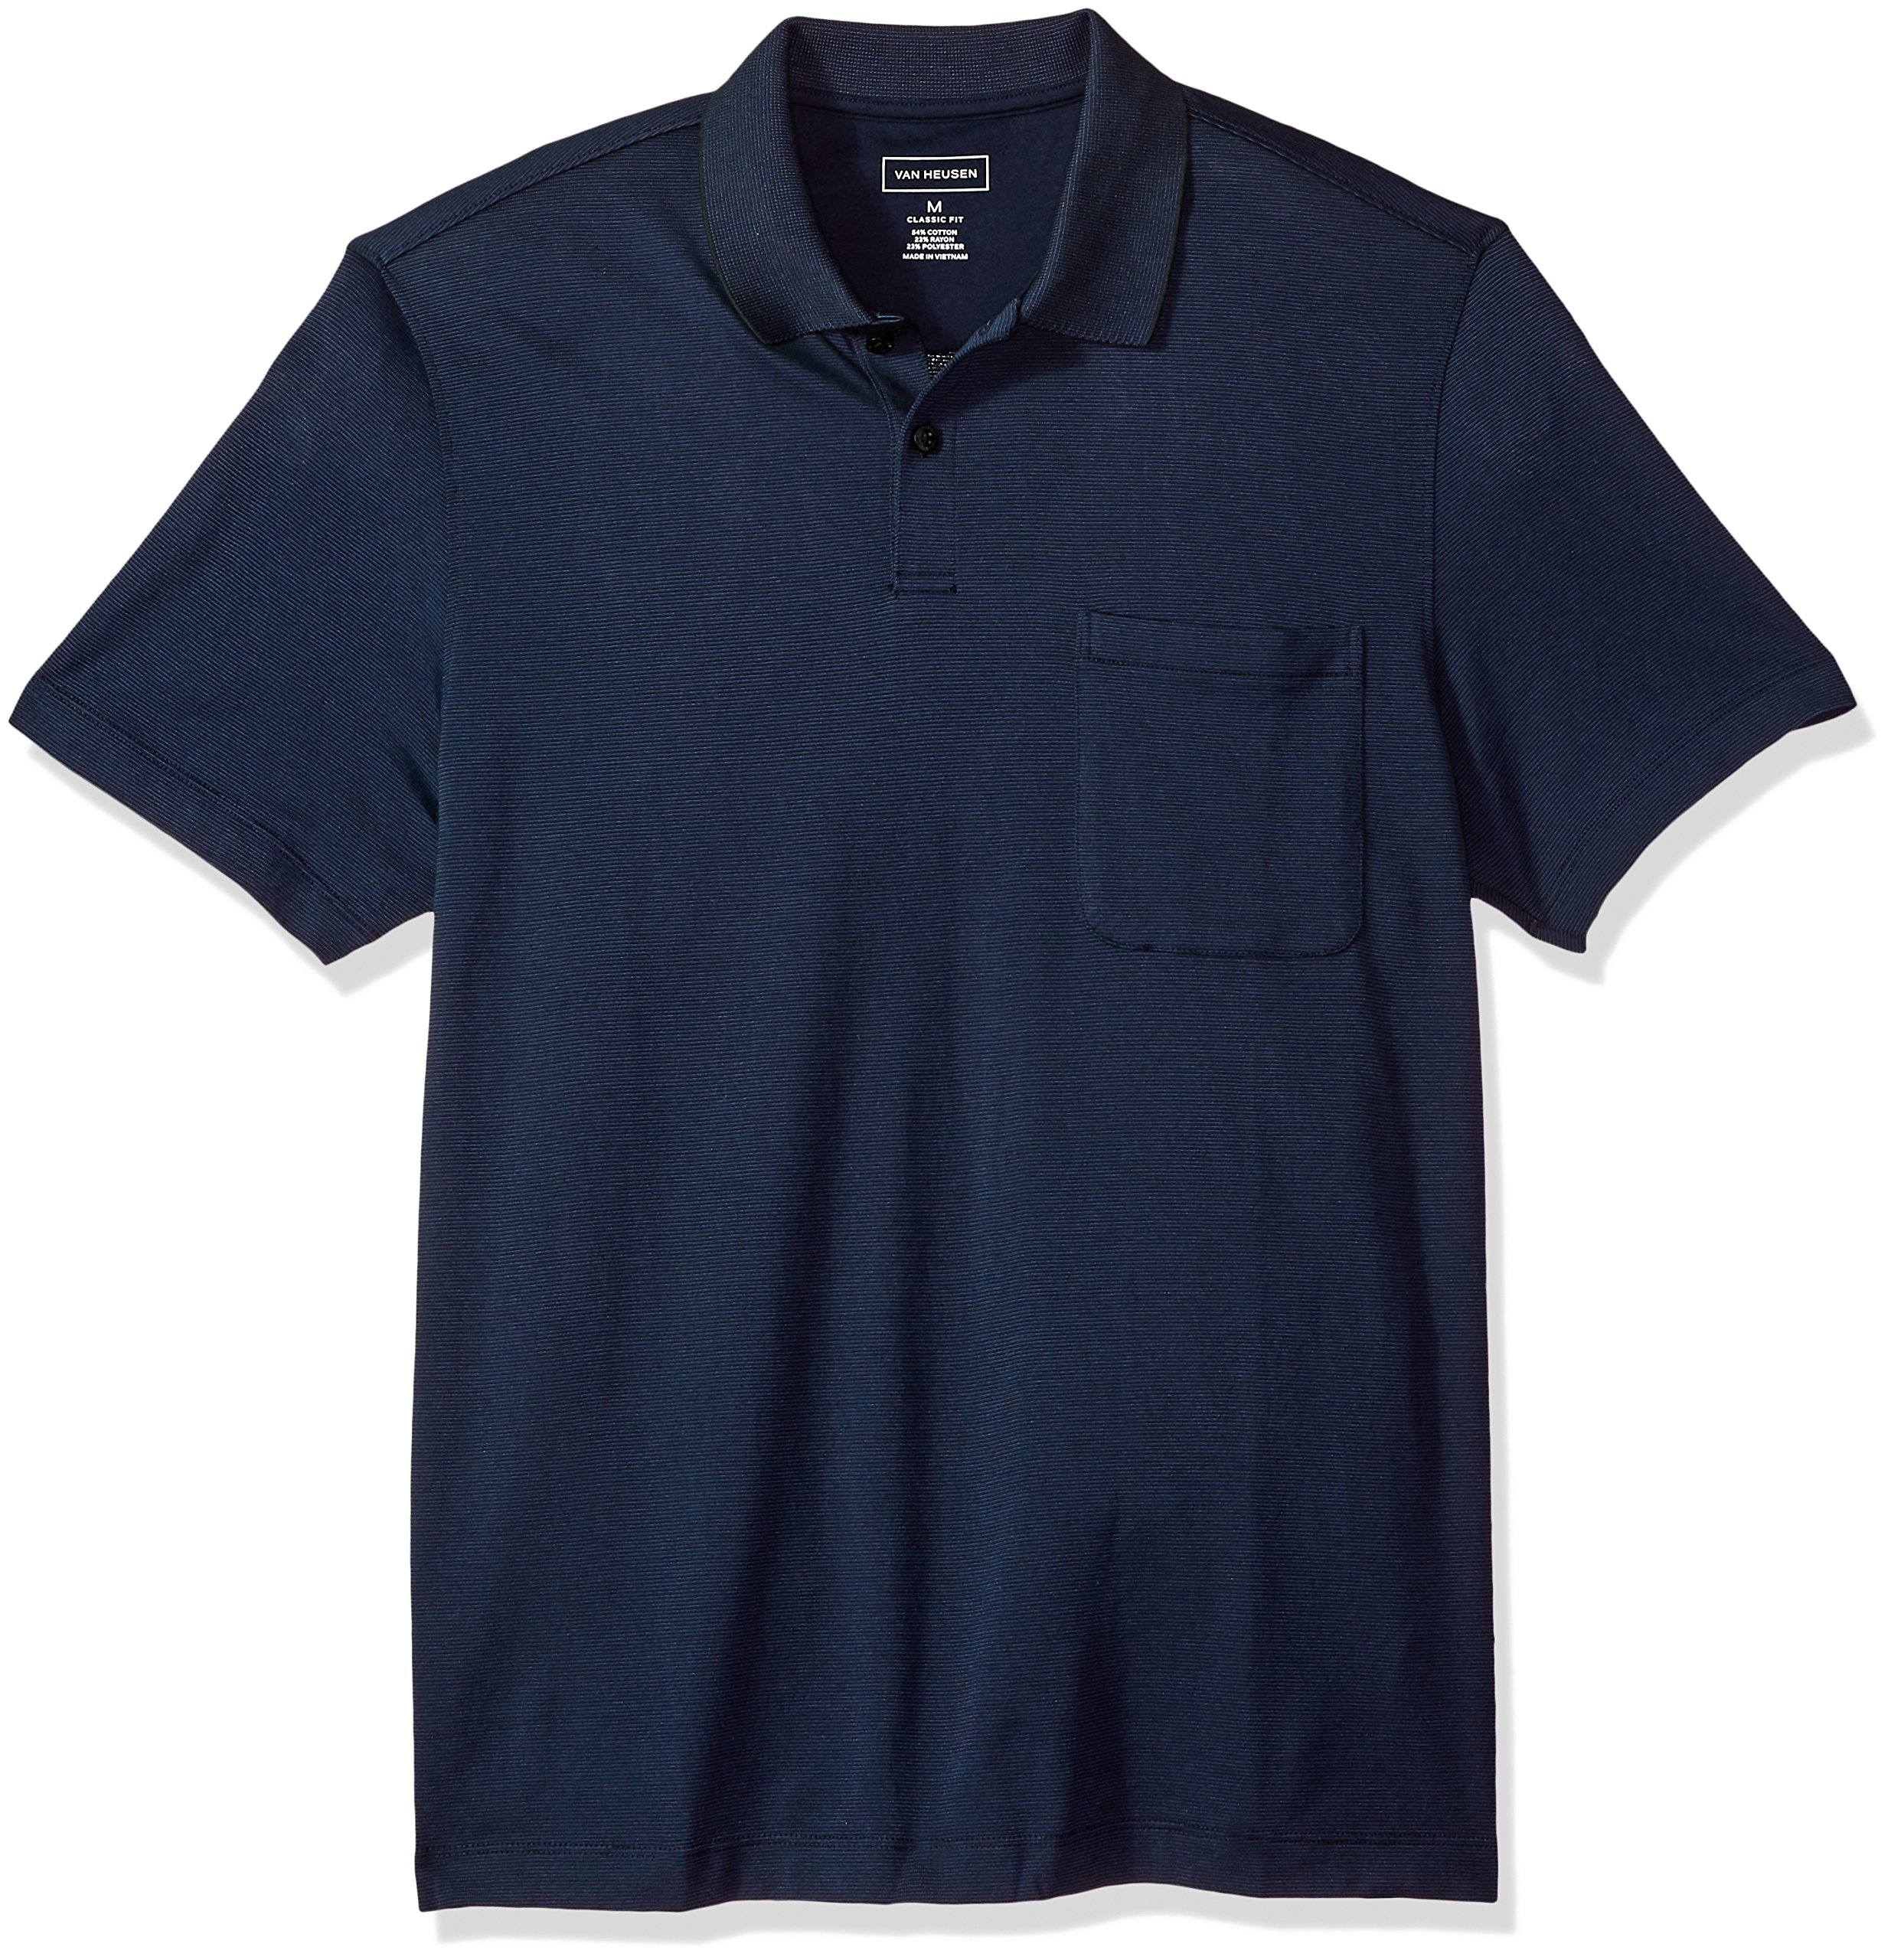 Van Heusen Men's Jacquard Stripe Short Sleeve Polo, Majestic Blue, X-Large